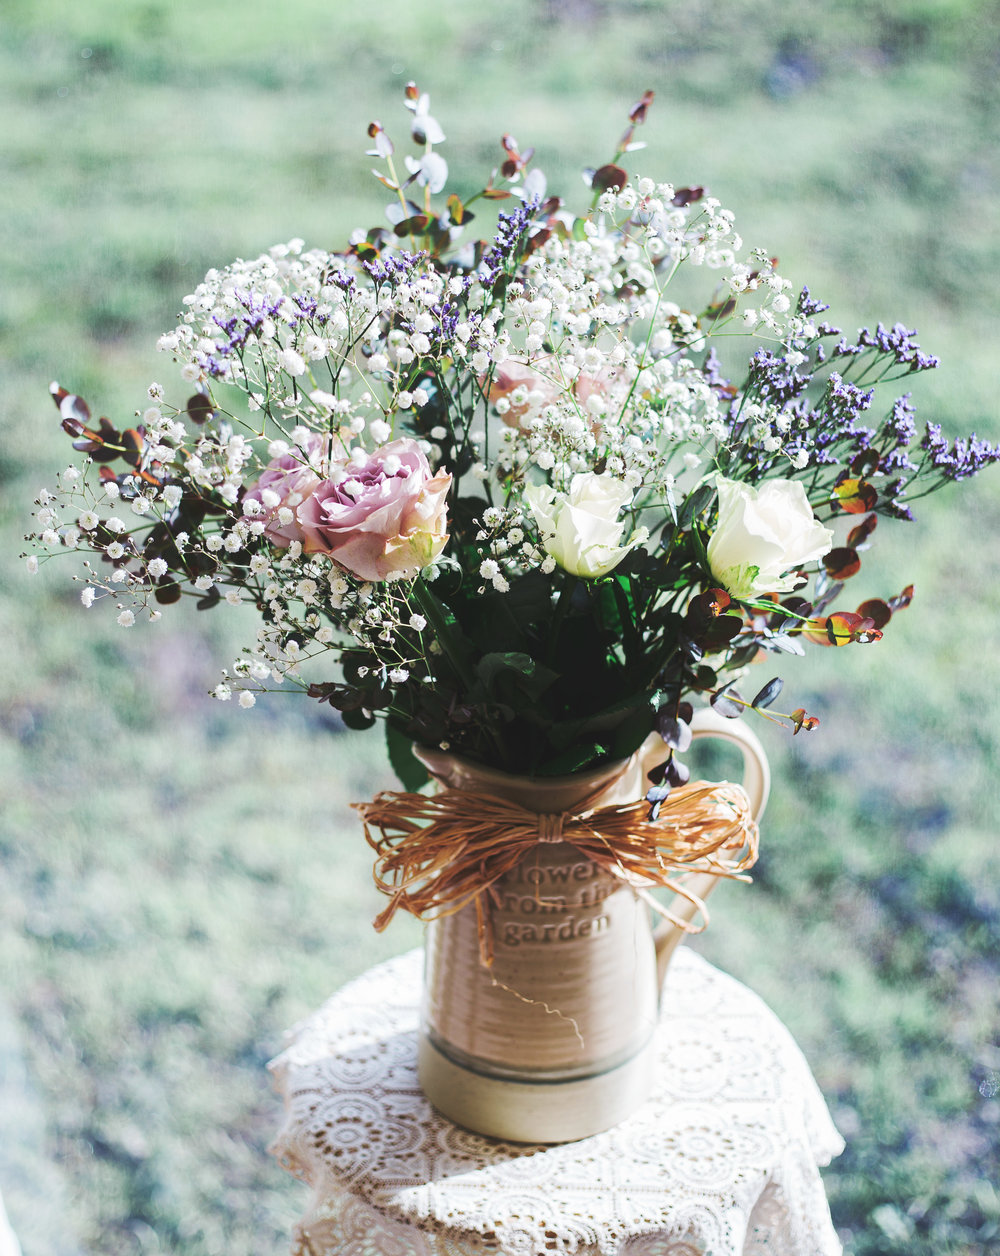 The bridal flower bouquet for the vintage rustic wedding